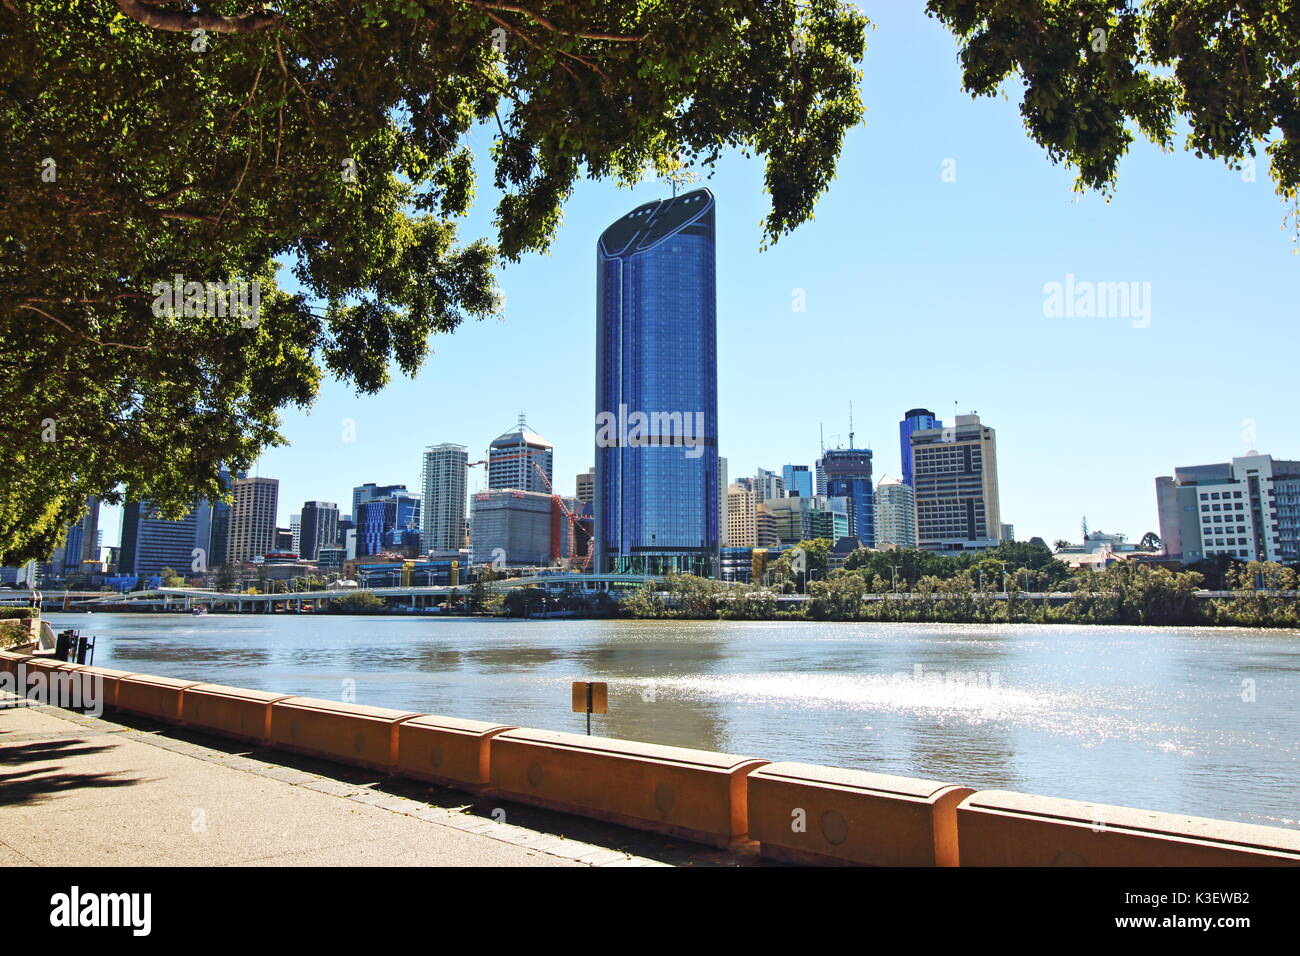 View of Brisbane CBD with the 1 William Street skyscraper in the distance seen from the waterfront of Brisbane River, - Stock Image